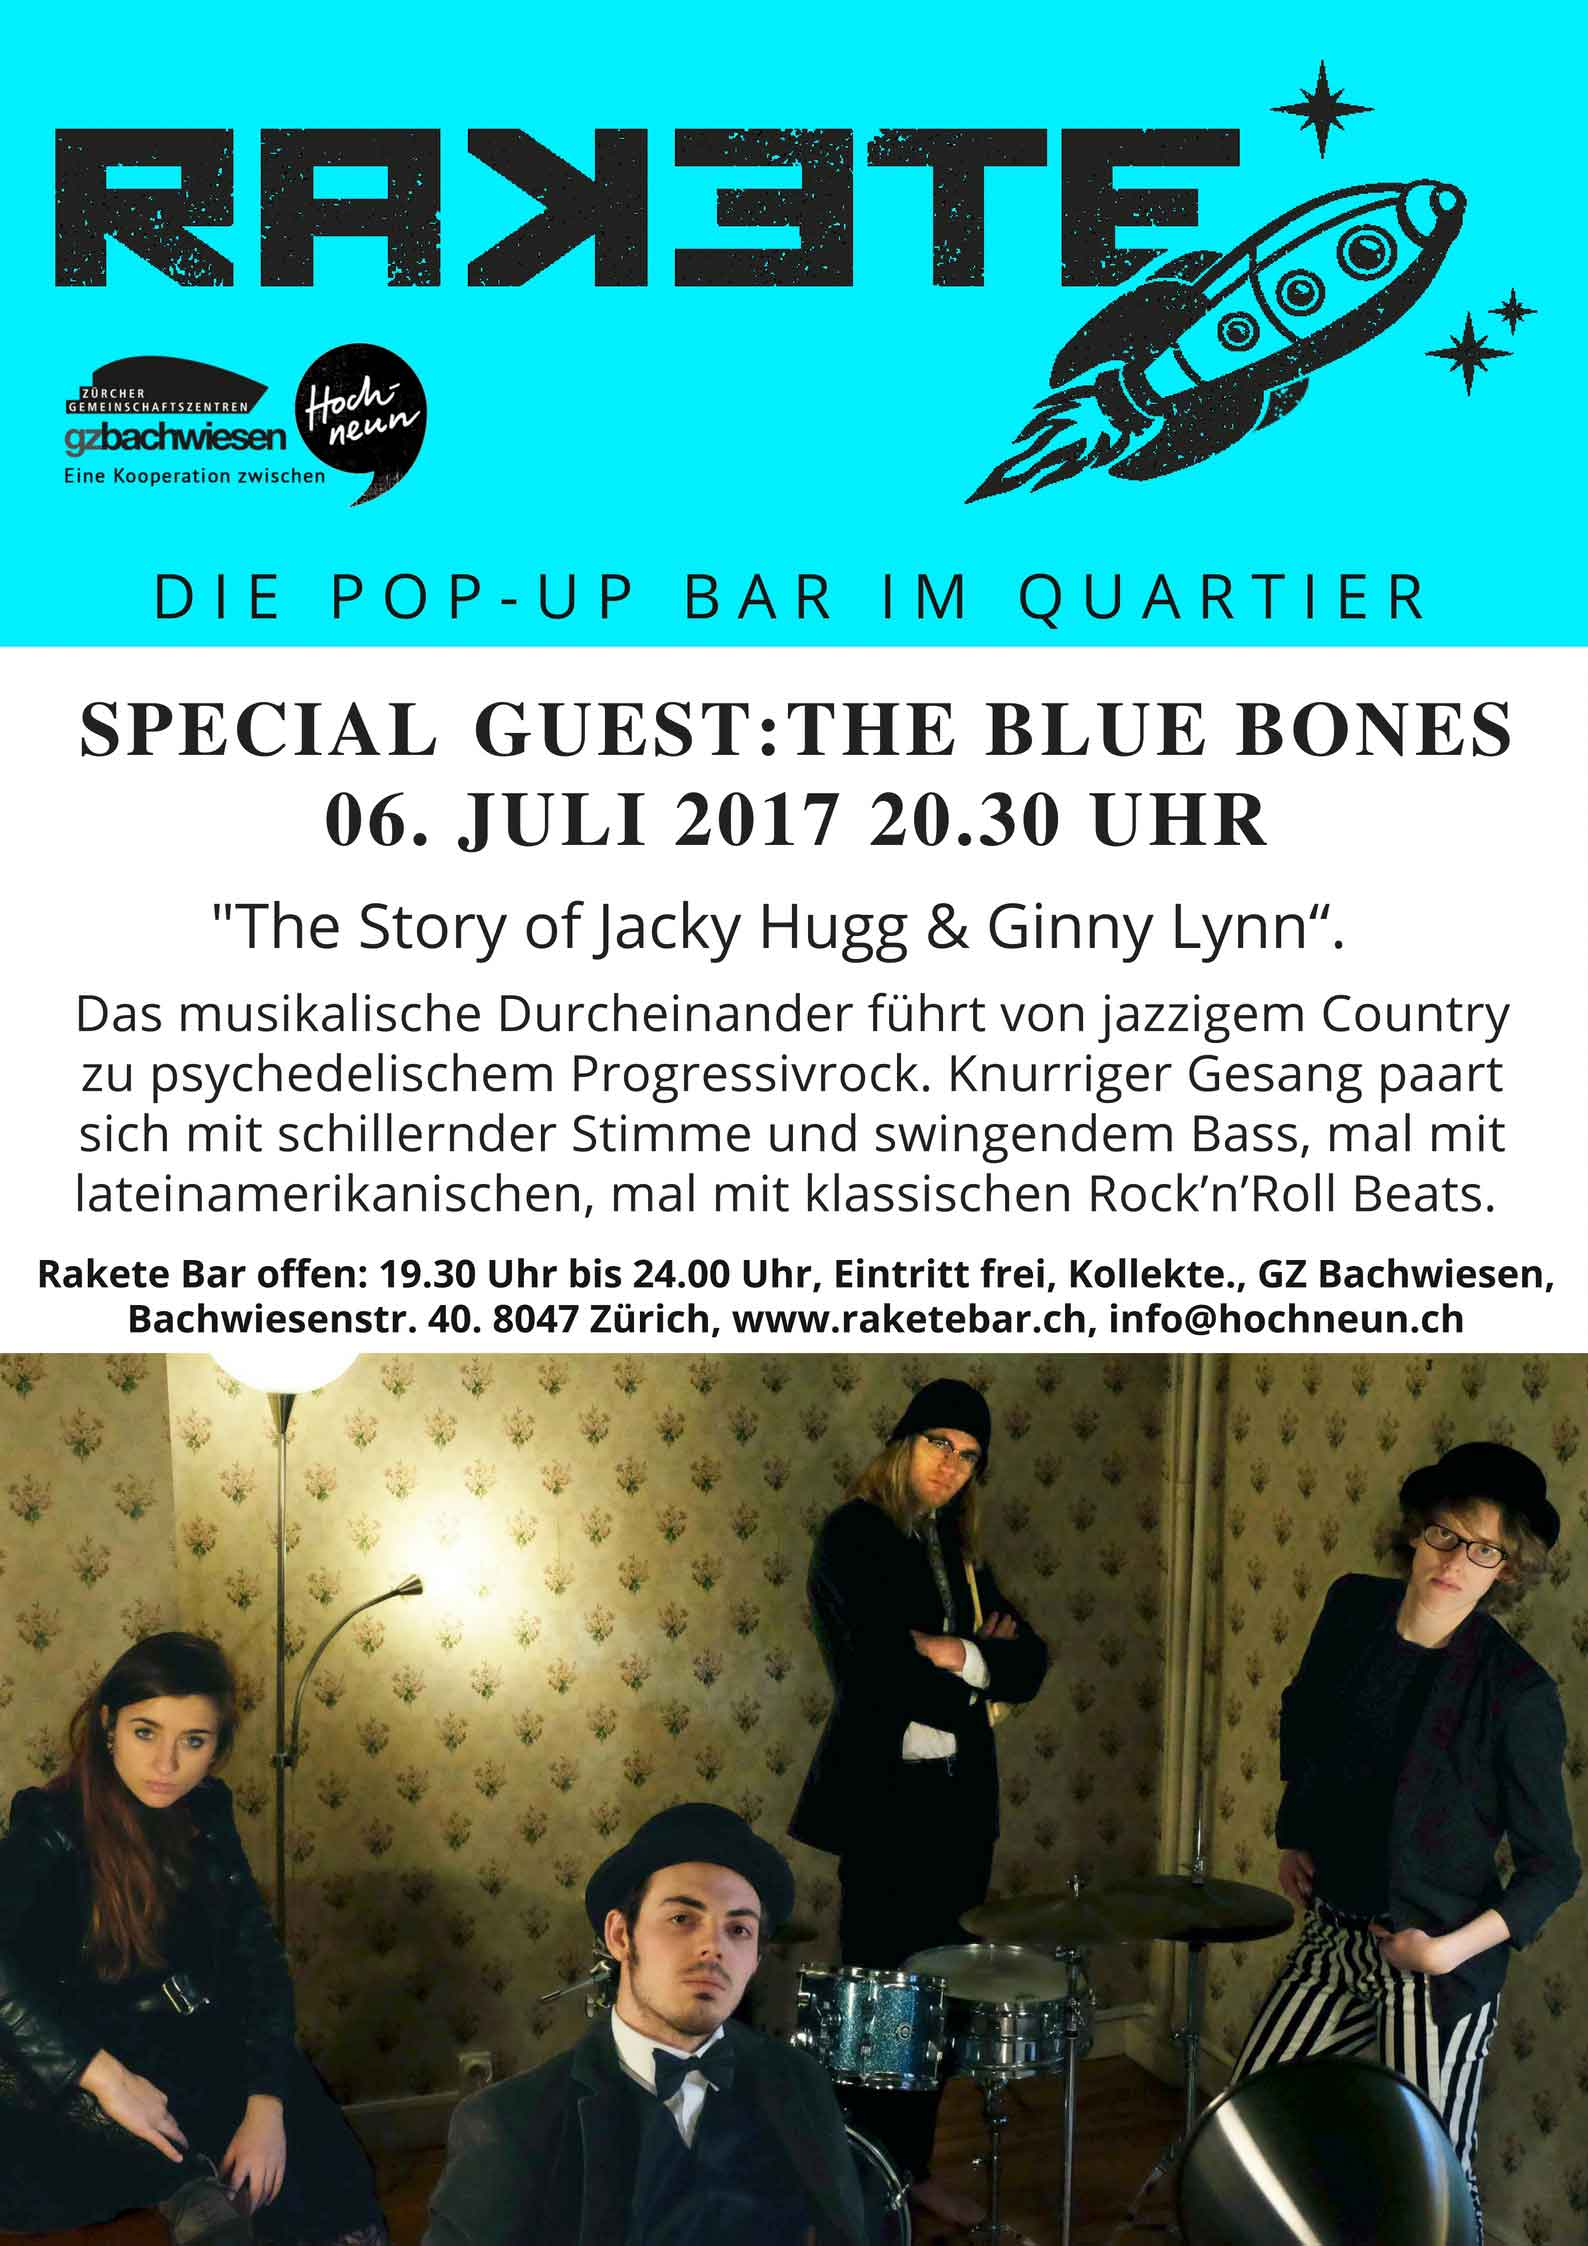 The Blue Bones in der Rakete